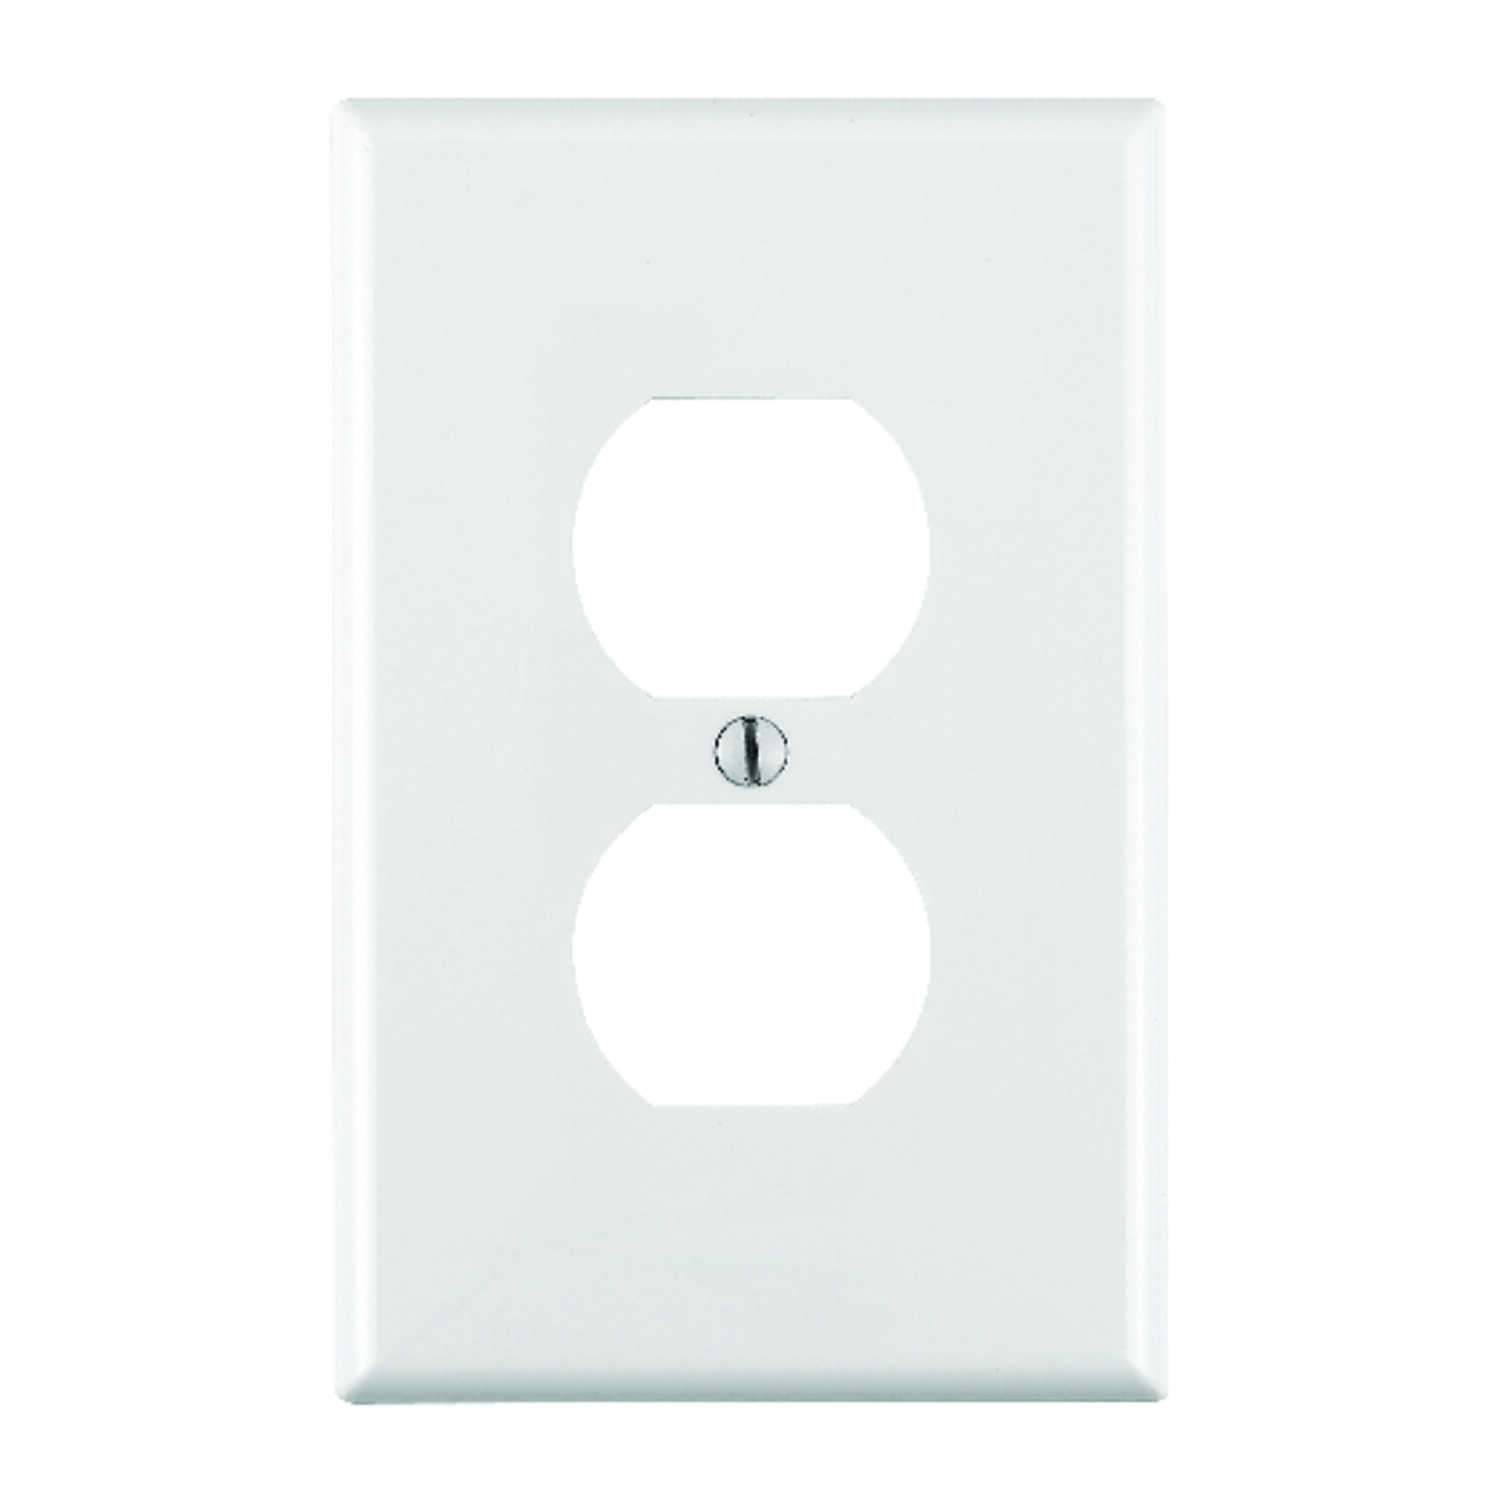 Leviton Midway White 1 gang Nylon Duplex Outlet Wall Plate 1